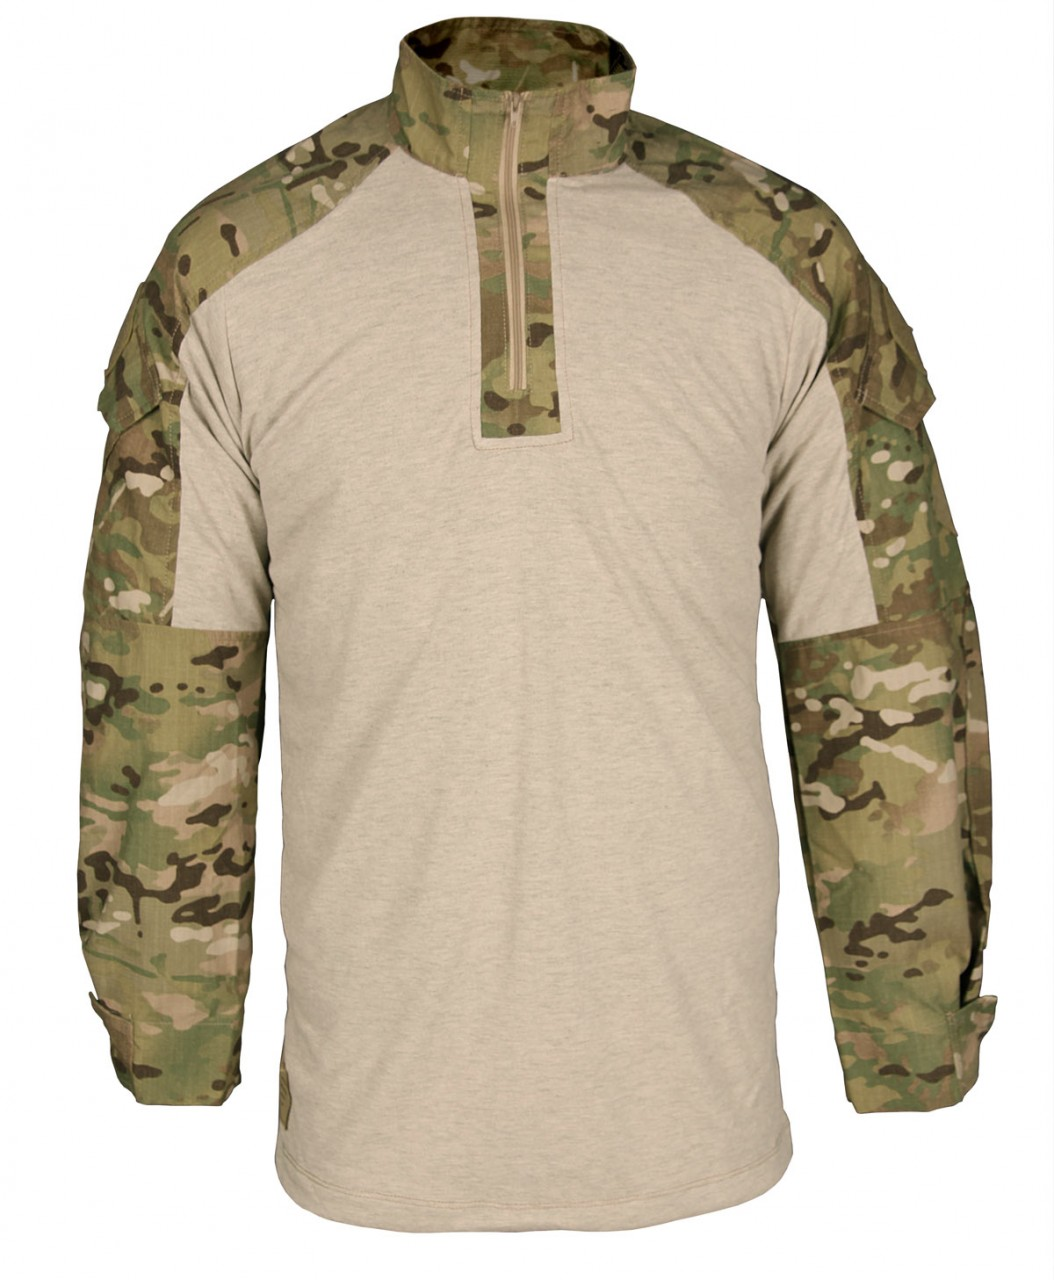 American-ArmyNavy- Military Clothing, Boots, Surplus, & Tactical Gear